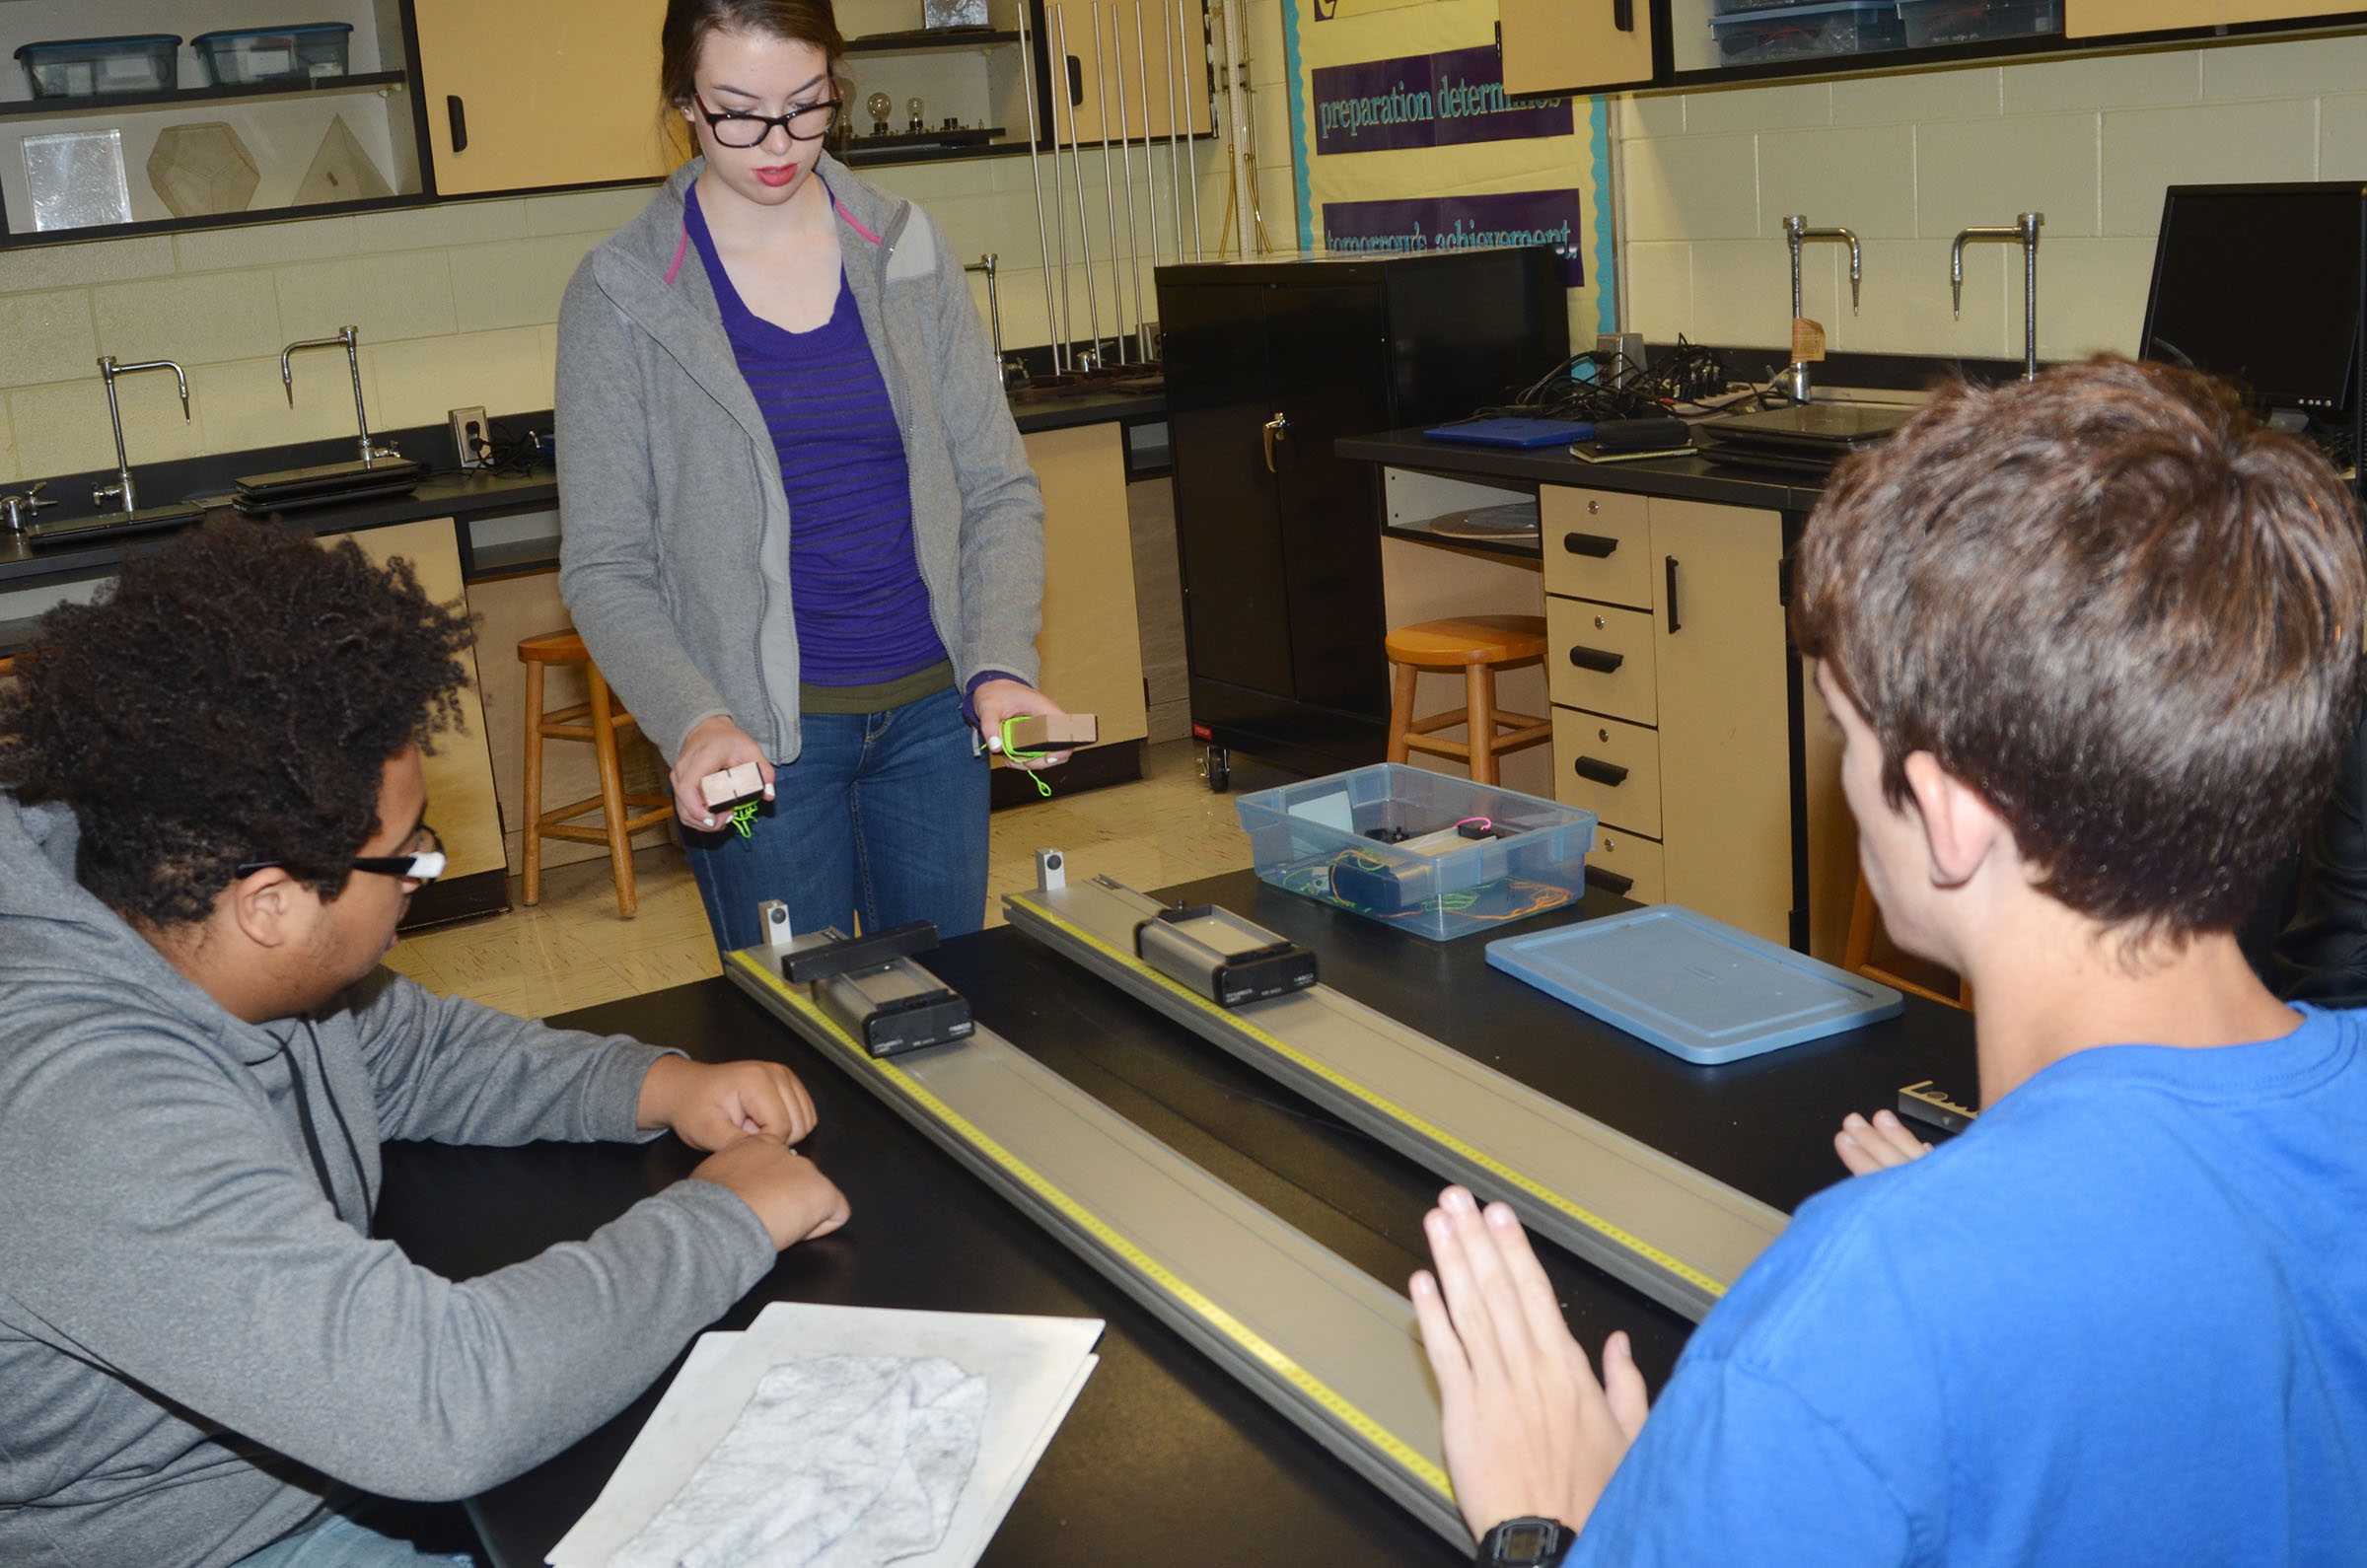 CHS senior Laura Lamb and her groupmates, seniors Ricky Smith-Cecil, at left, and Murphy Lamb perform their momentum lab experiment.